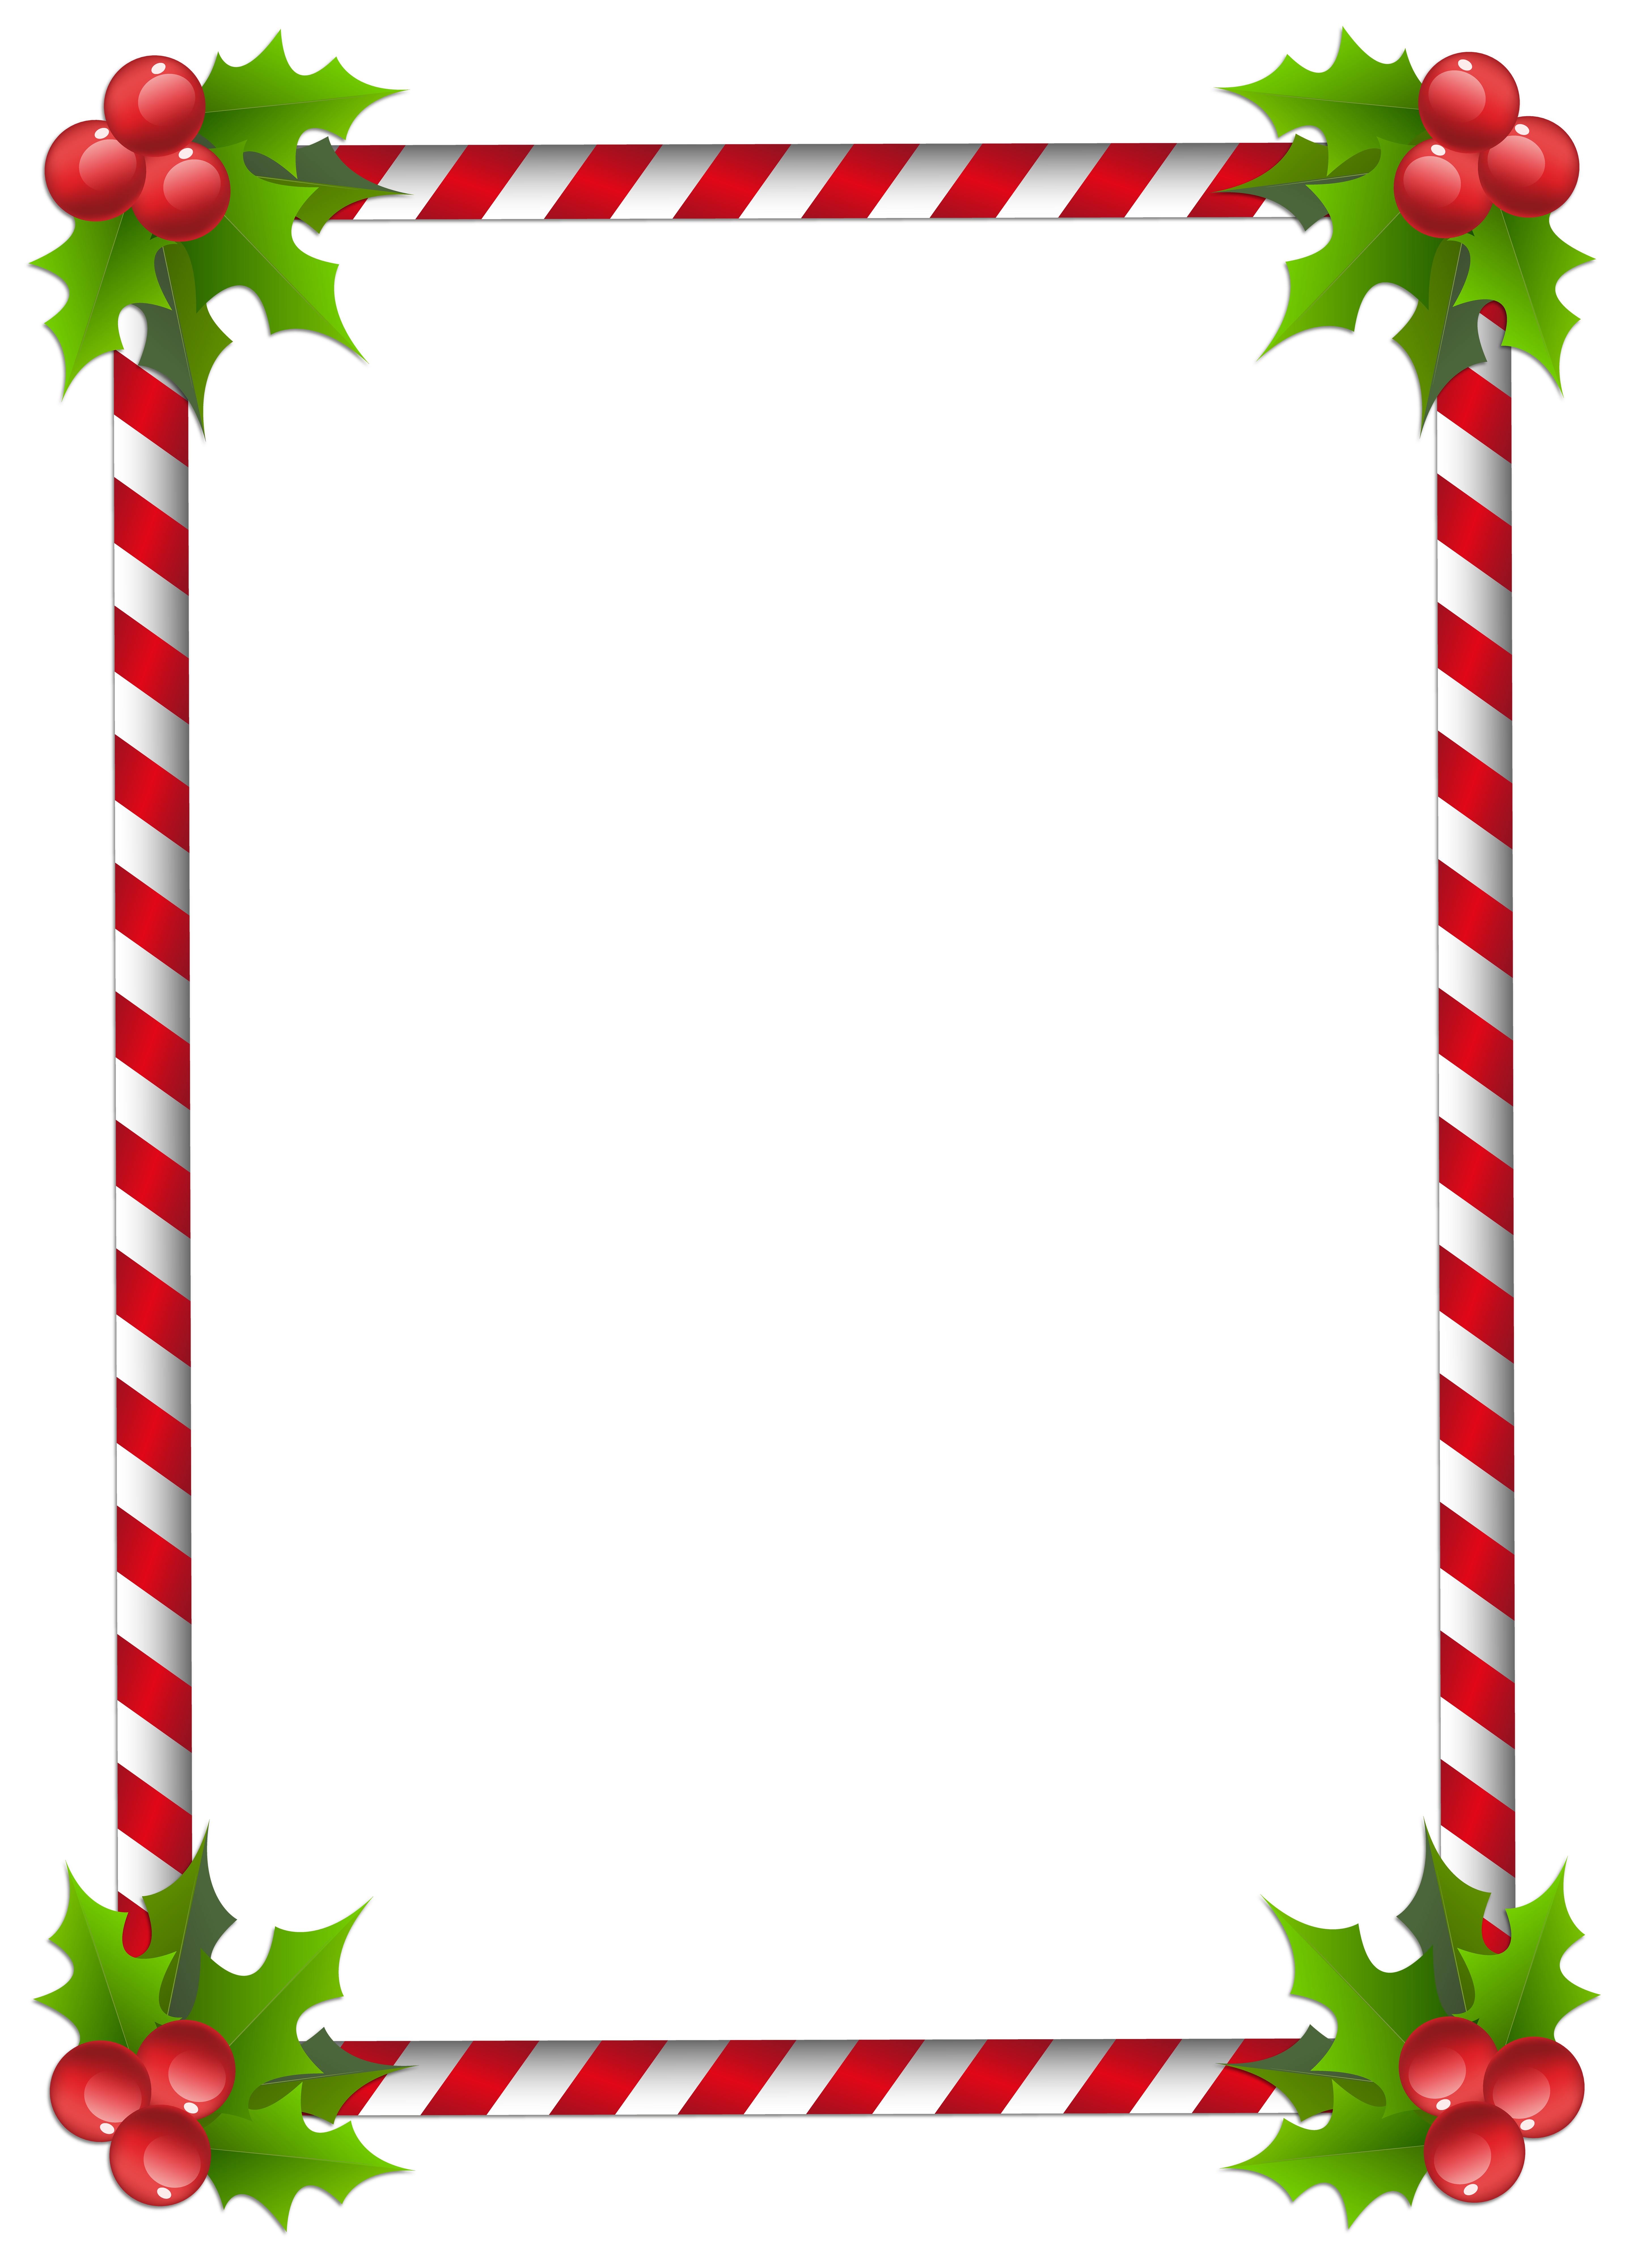 Free christmas frames and borders clipart graphic freeuse library Christmas Transparent Classic Frame Border | Gallery Yopriceville ... graphic freeuse library